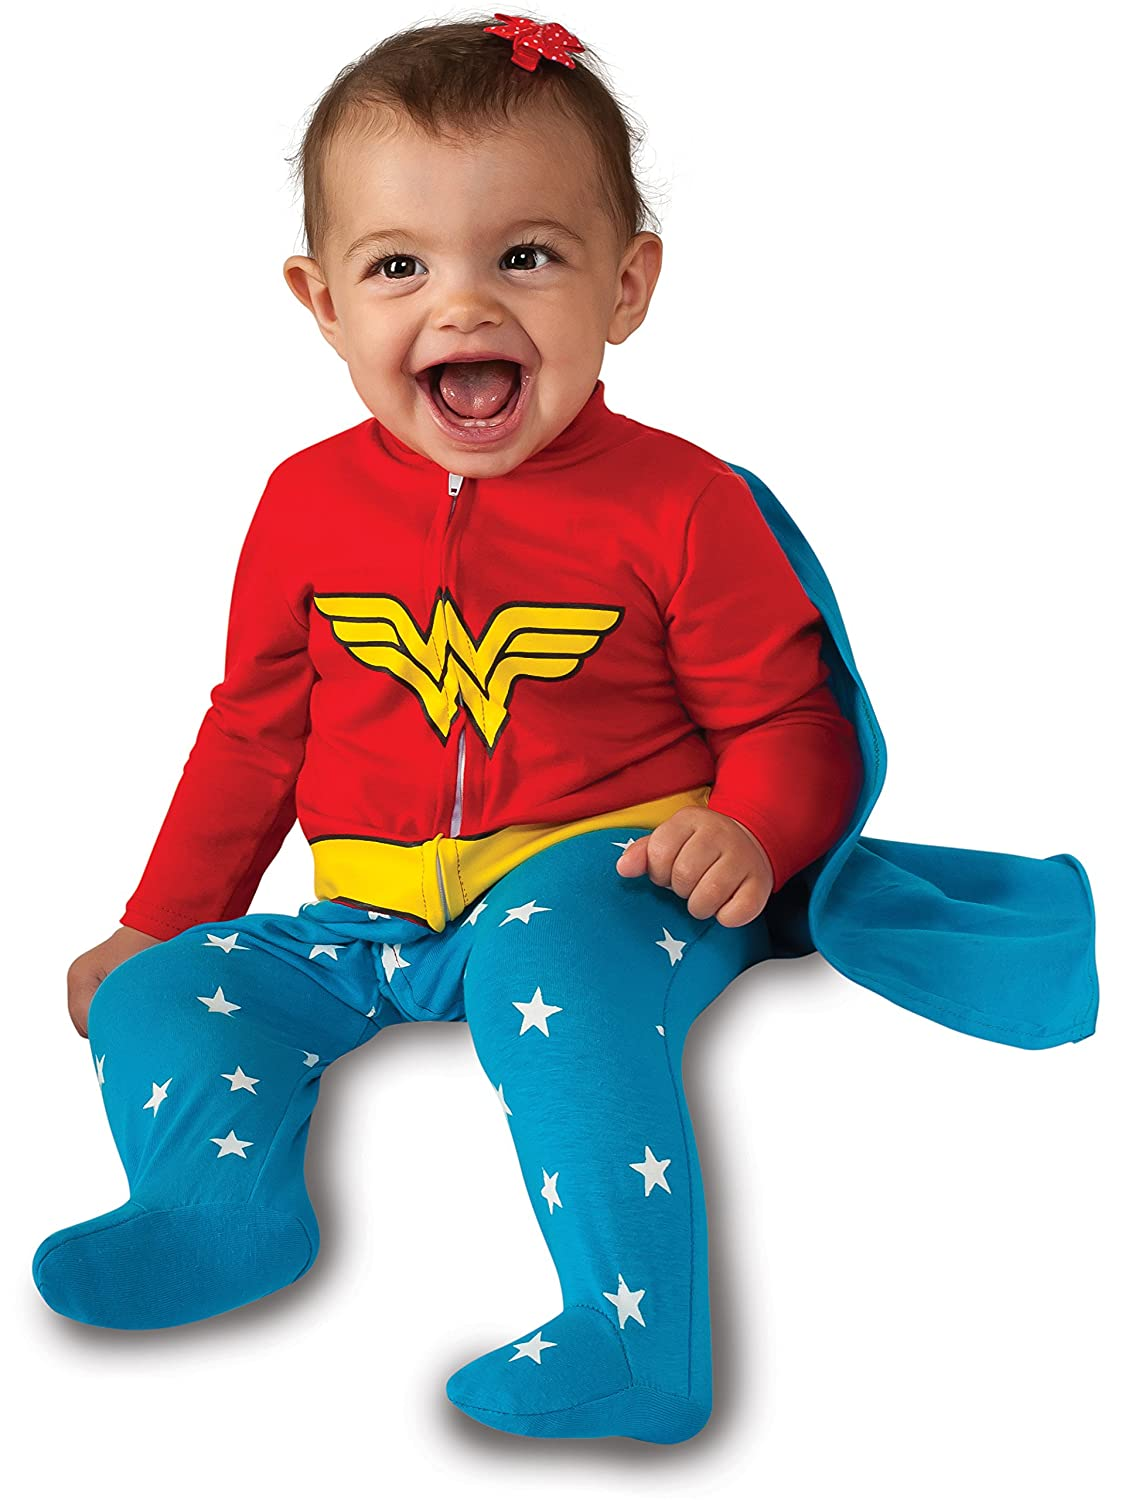 Rubie's Costume Baby Girl's DC Comics Superhero Style Baby Wonder Woman Costume Rubies Costumes - Apparel 887607